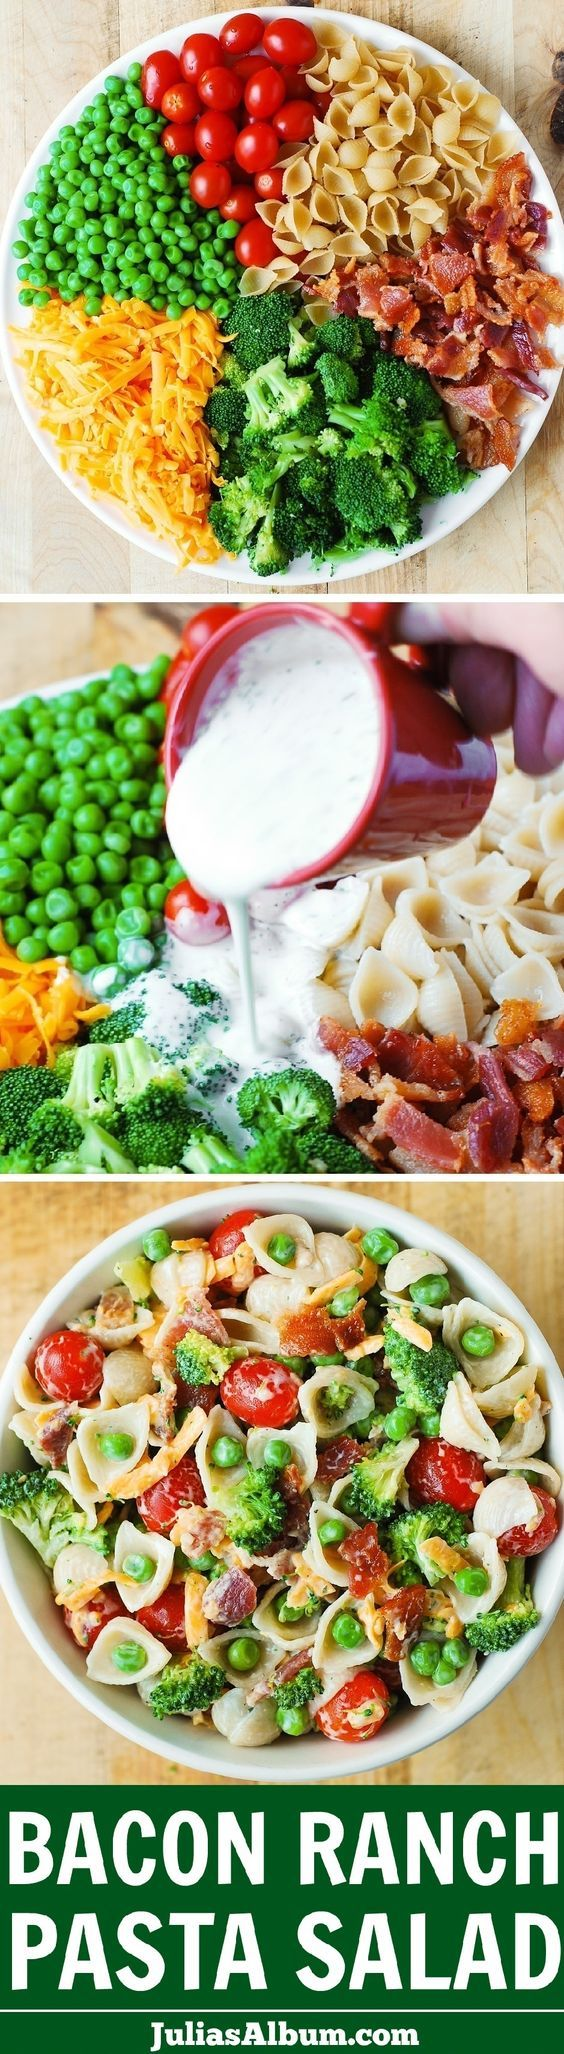 Bacon Ranch Pasta Salad - LOADED with veggies (broccoli cherry tomatoes sweet…